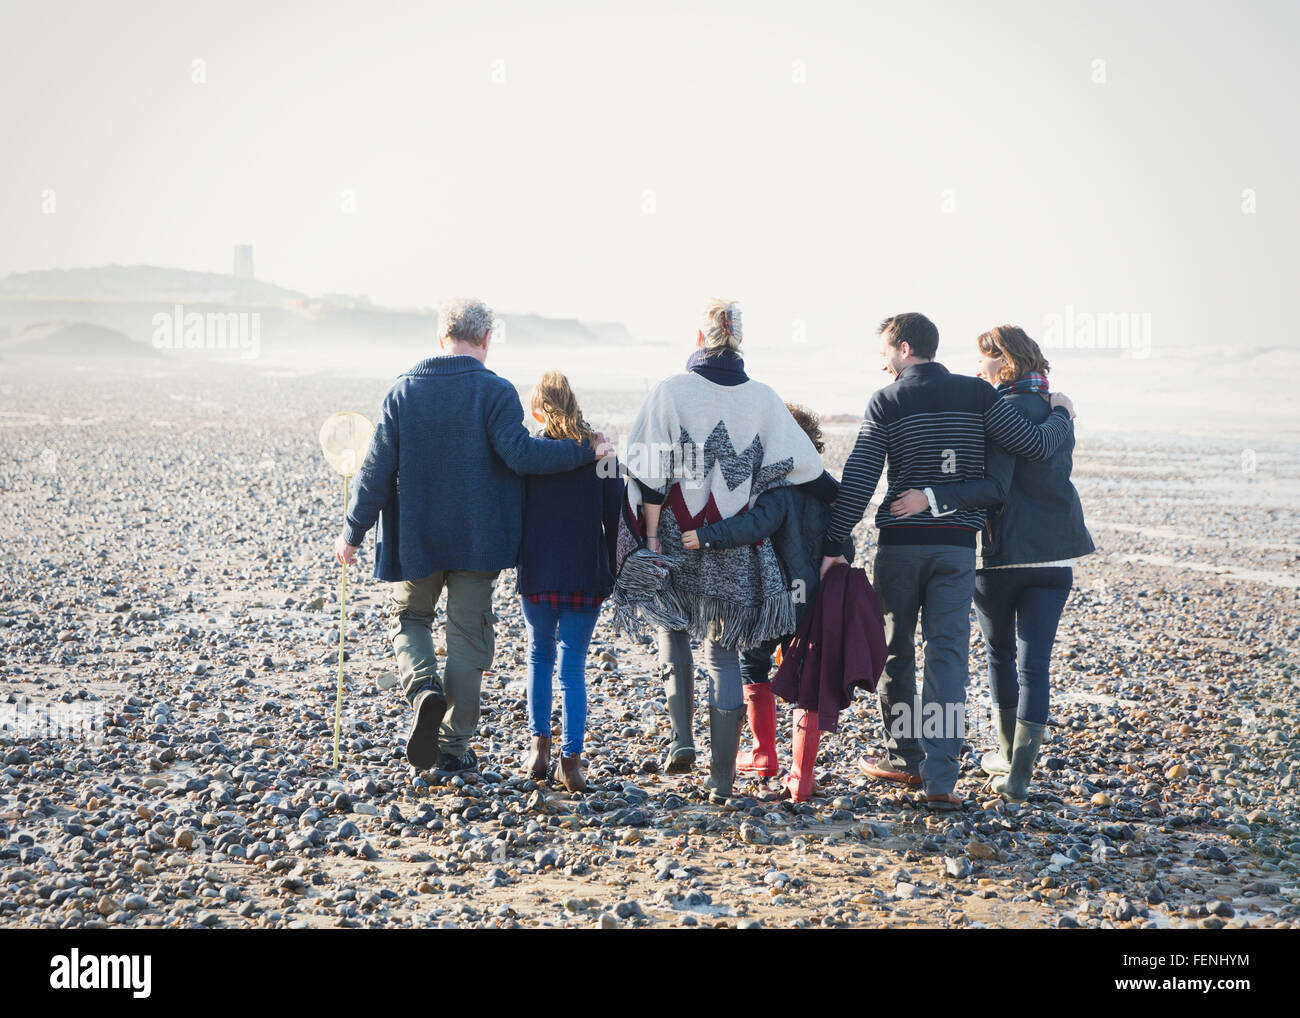 Multi-generation family walking in a row on beach - Stock Image